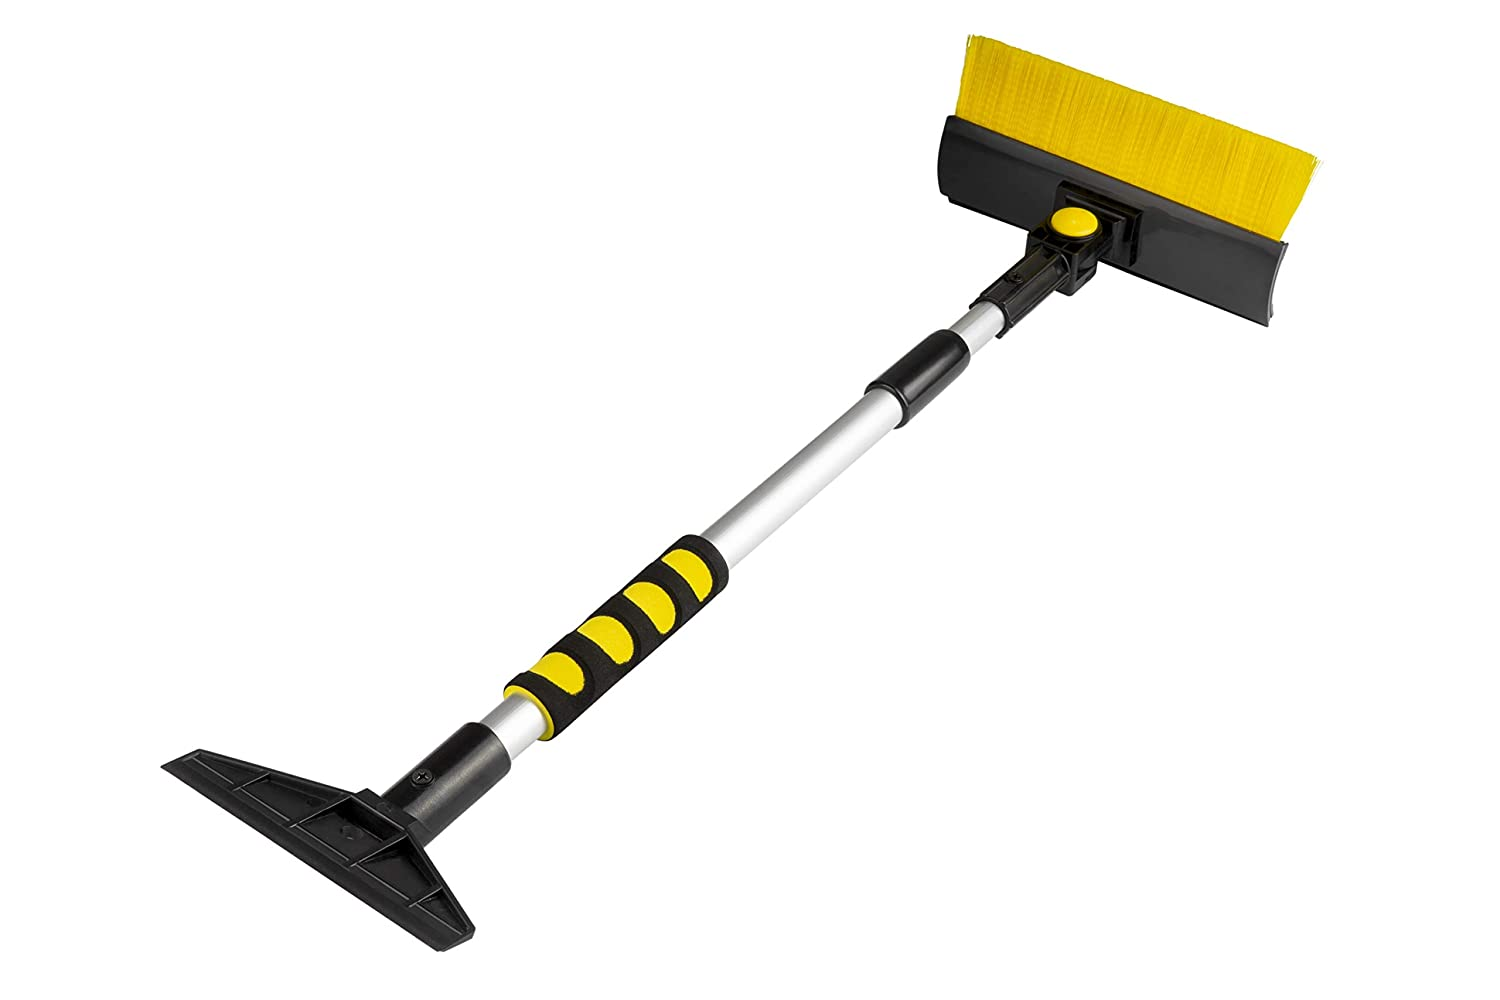 Lightweight Sturdy Aluminum Design Extends and Retracts from 23.5 to 35.5 for Easy Storage Zone Tech Extendable Ice Scraper and Snow Brush with Foam Grip